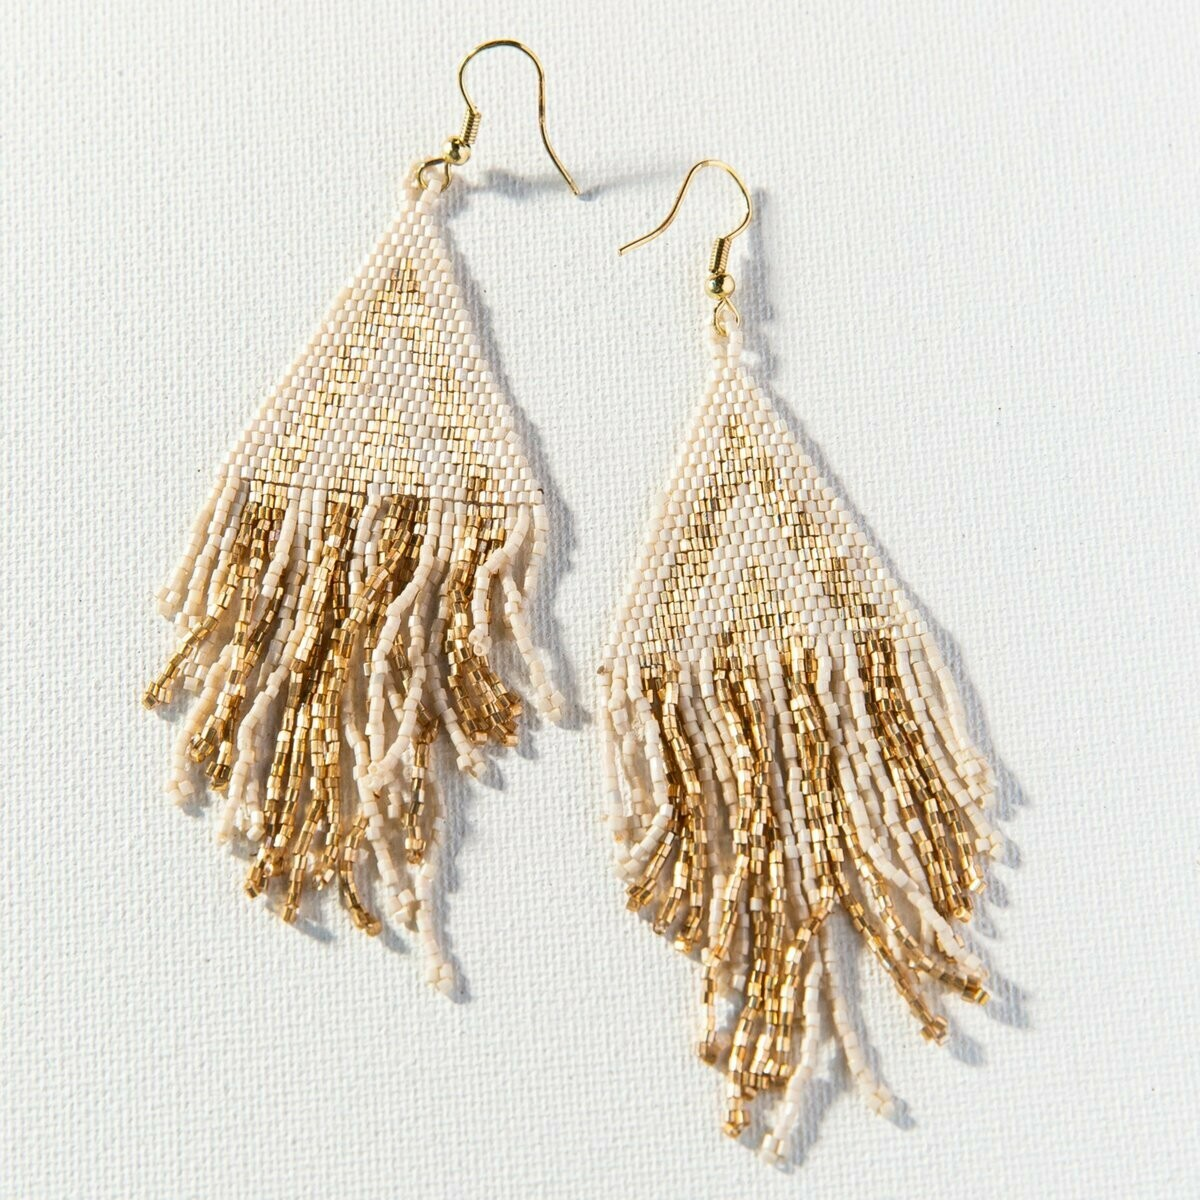 Ink & Alloy Earrings Gold/Ivory 1009